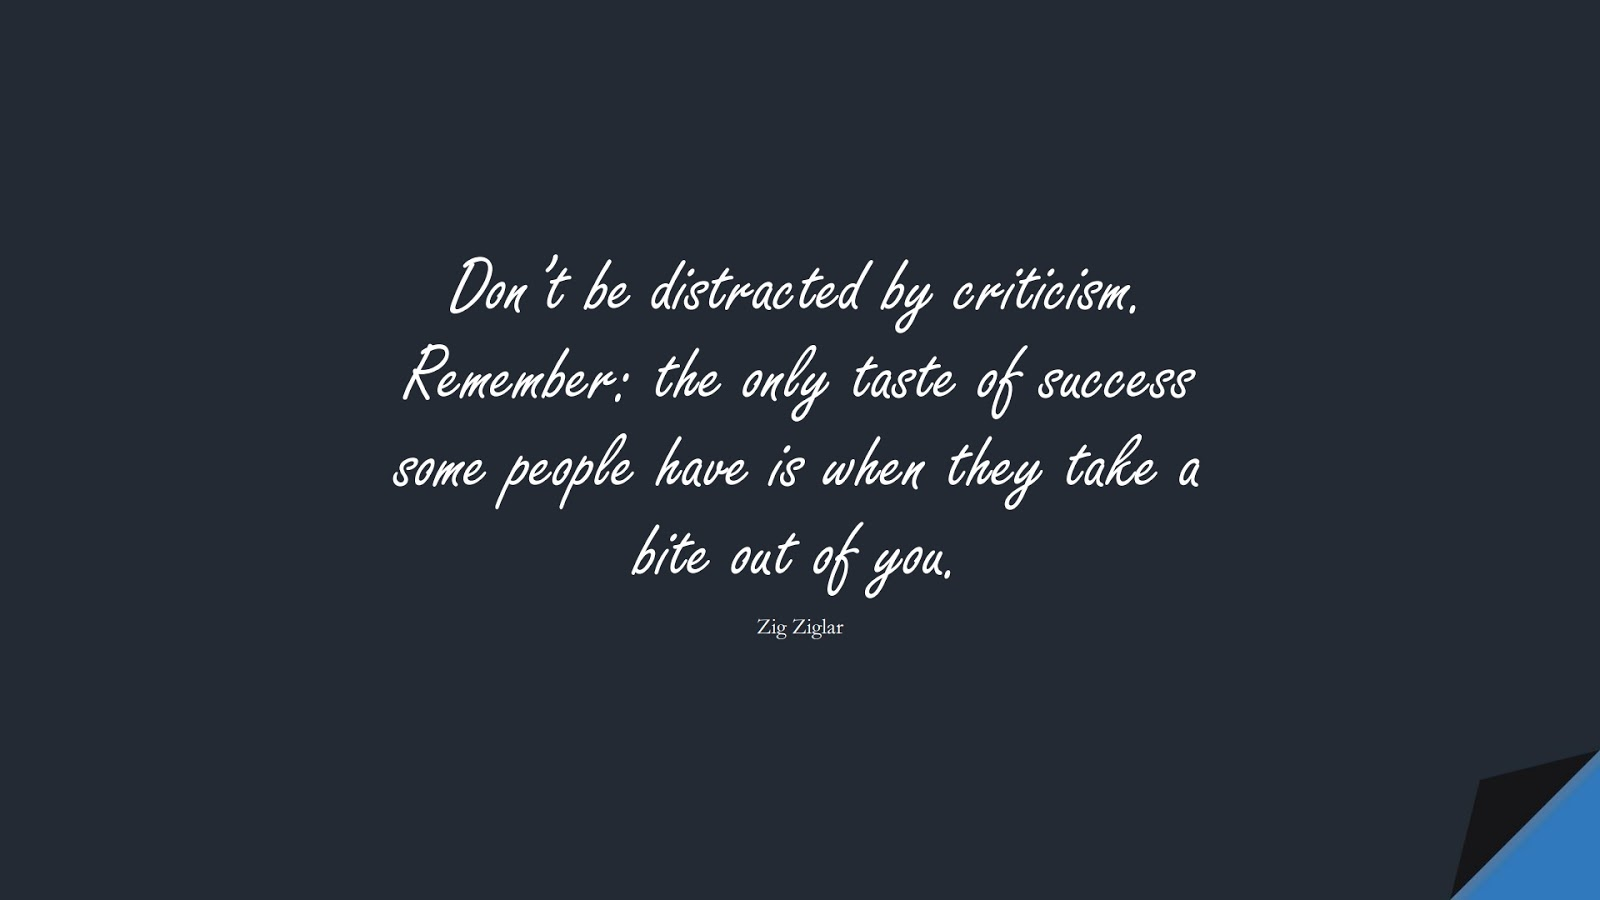 Don't be distracted by criticism. Remember: the only taste of success some people have is when they take a bite out of you. (Zig Ziglar);  #SelfEsteemQuotes